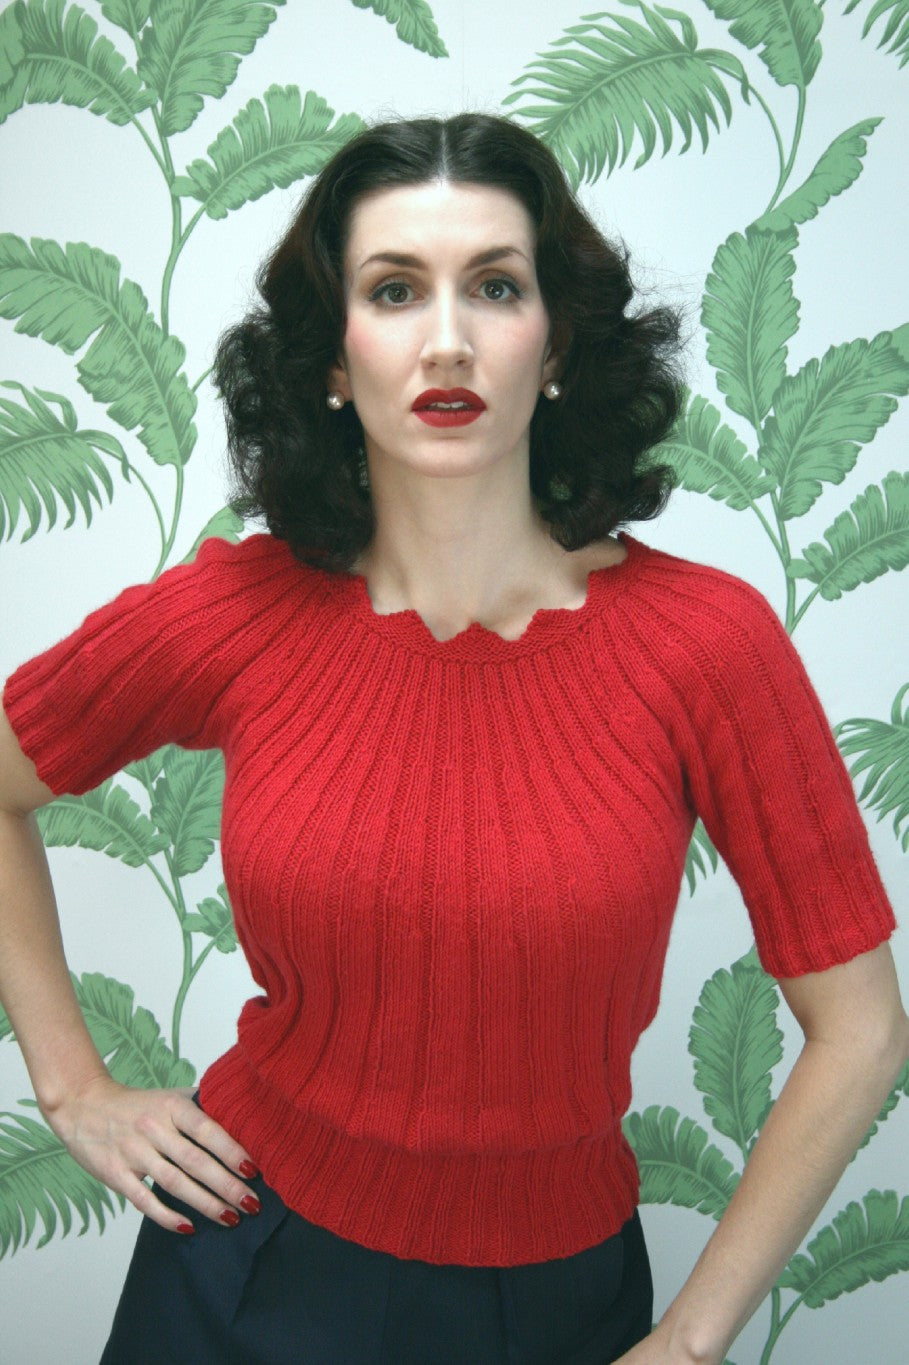 A woman wearing a red short sleeved knitted sweater